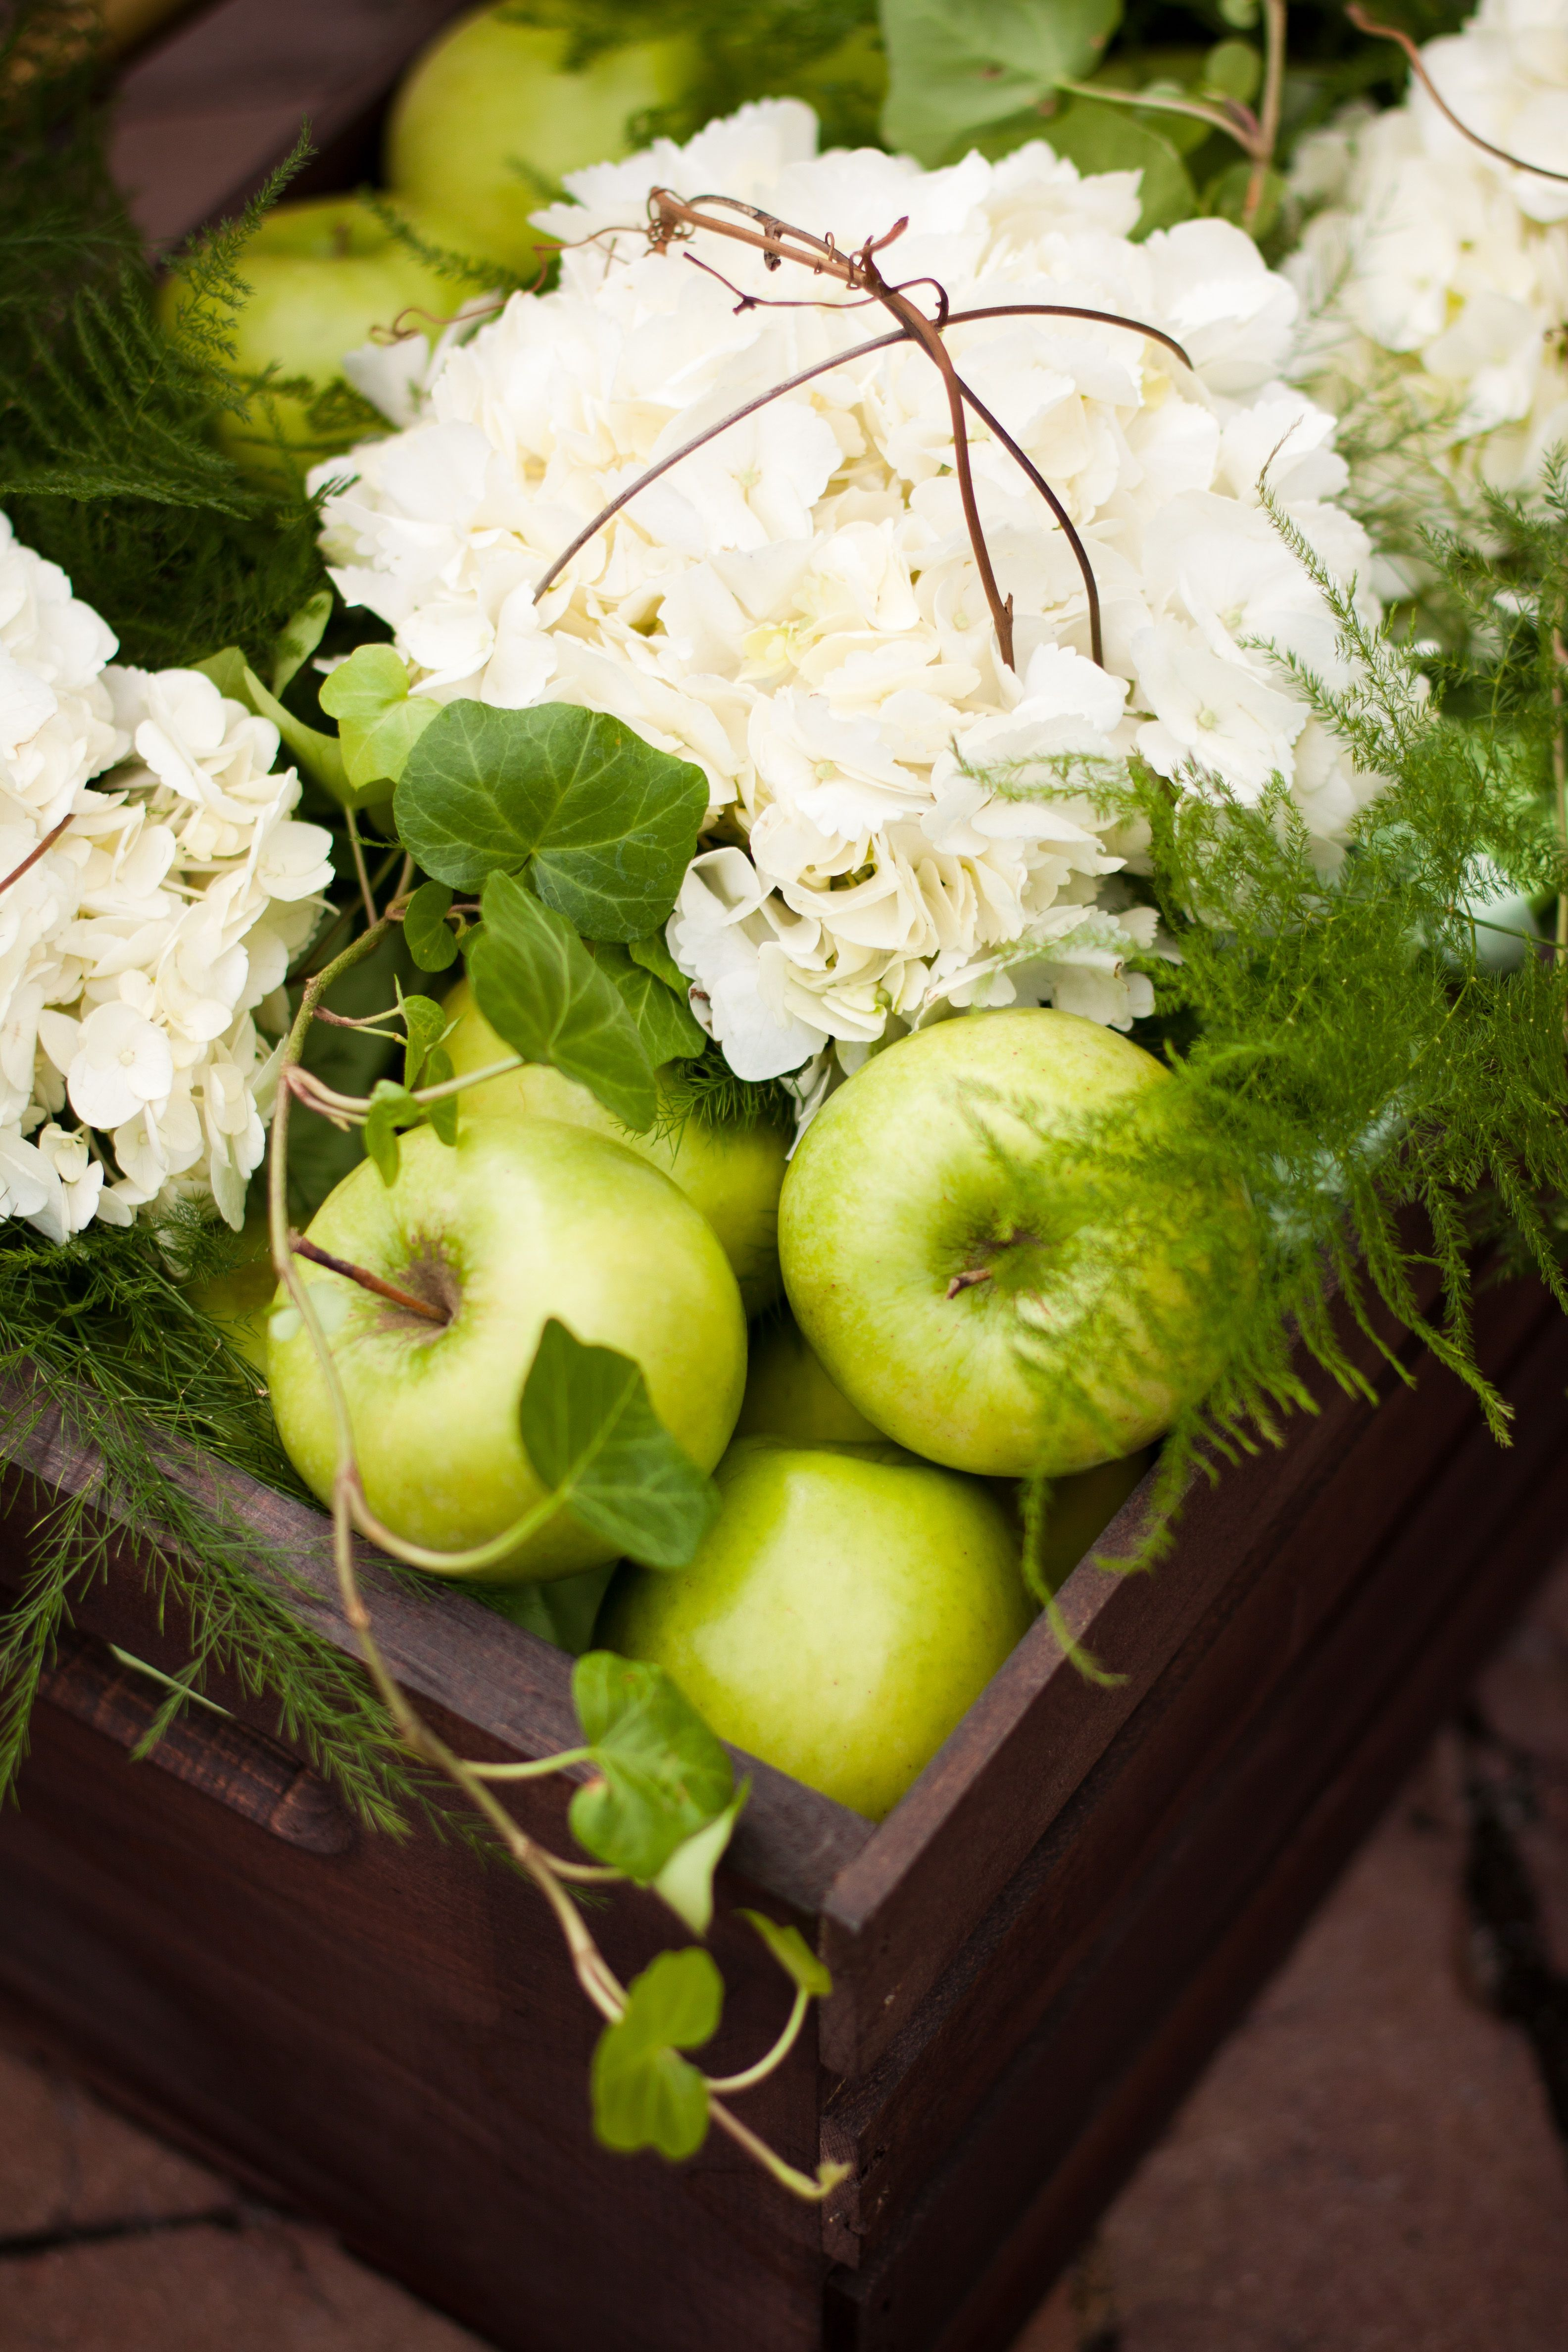 Green apples white hydrangeas pretty mix of colors and